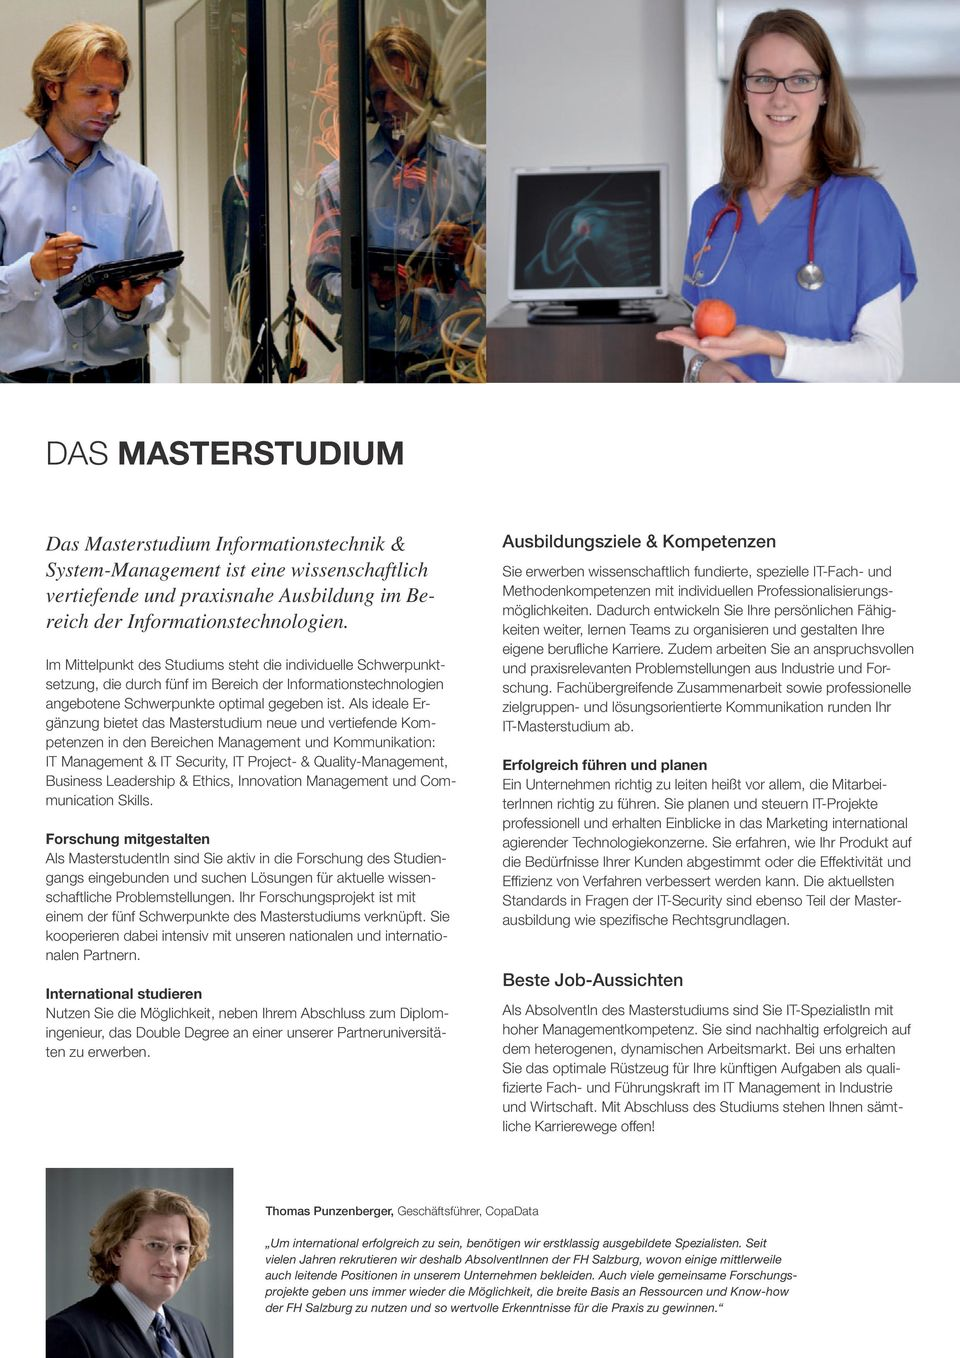 Als ideale Ergänzung bietet das Masterstudium neue und vertiefende Kompetenzen in den Bereichen Management und Kommunikation: IT Management & IT Security, IT Project- & Quality-Management, Business